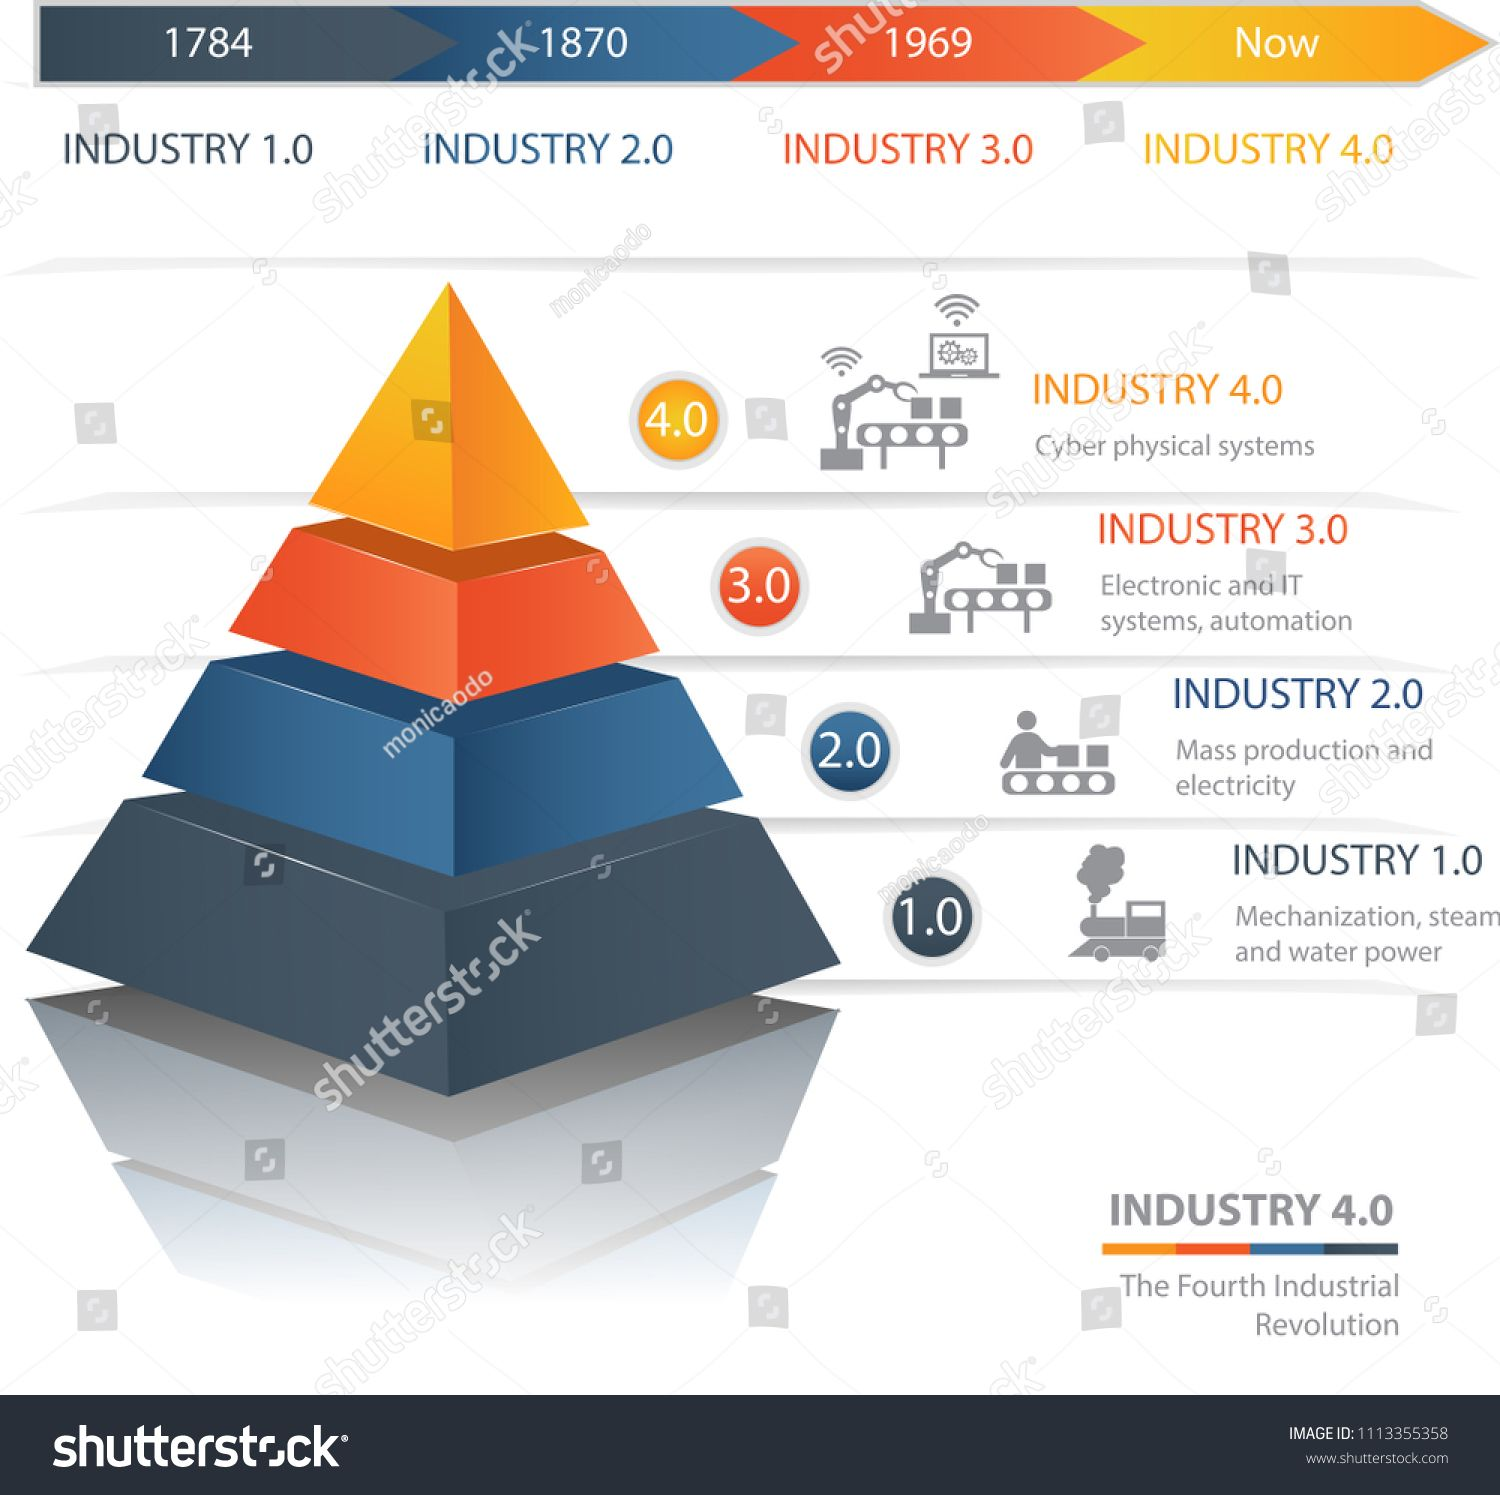 Industrie 4 0 The Fourth Industrial Revolution Colorful Pyramid